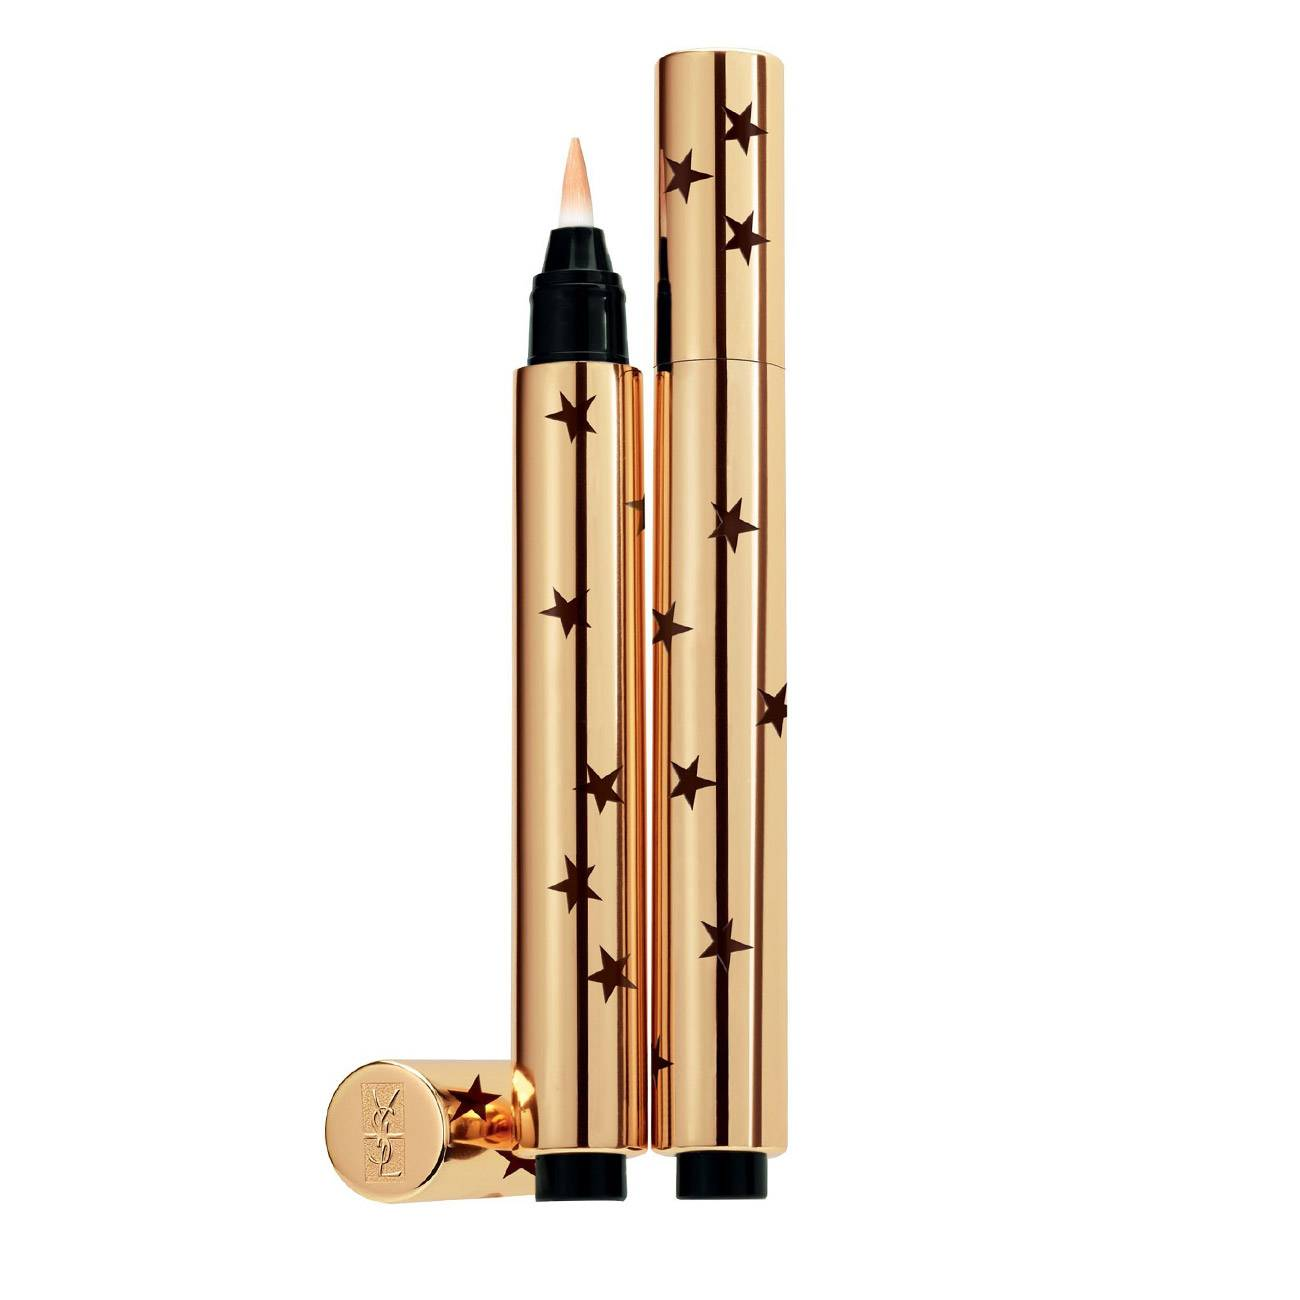 Touche Éclat Star Collector 02 01 Luminouse Ivory Yves Saint Laurent imagine 2021 bestvalue.eu